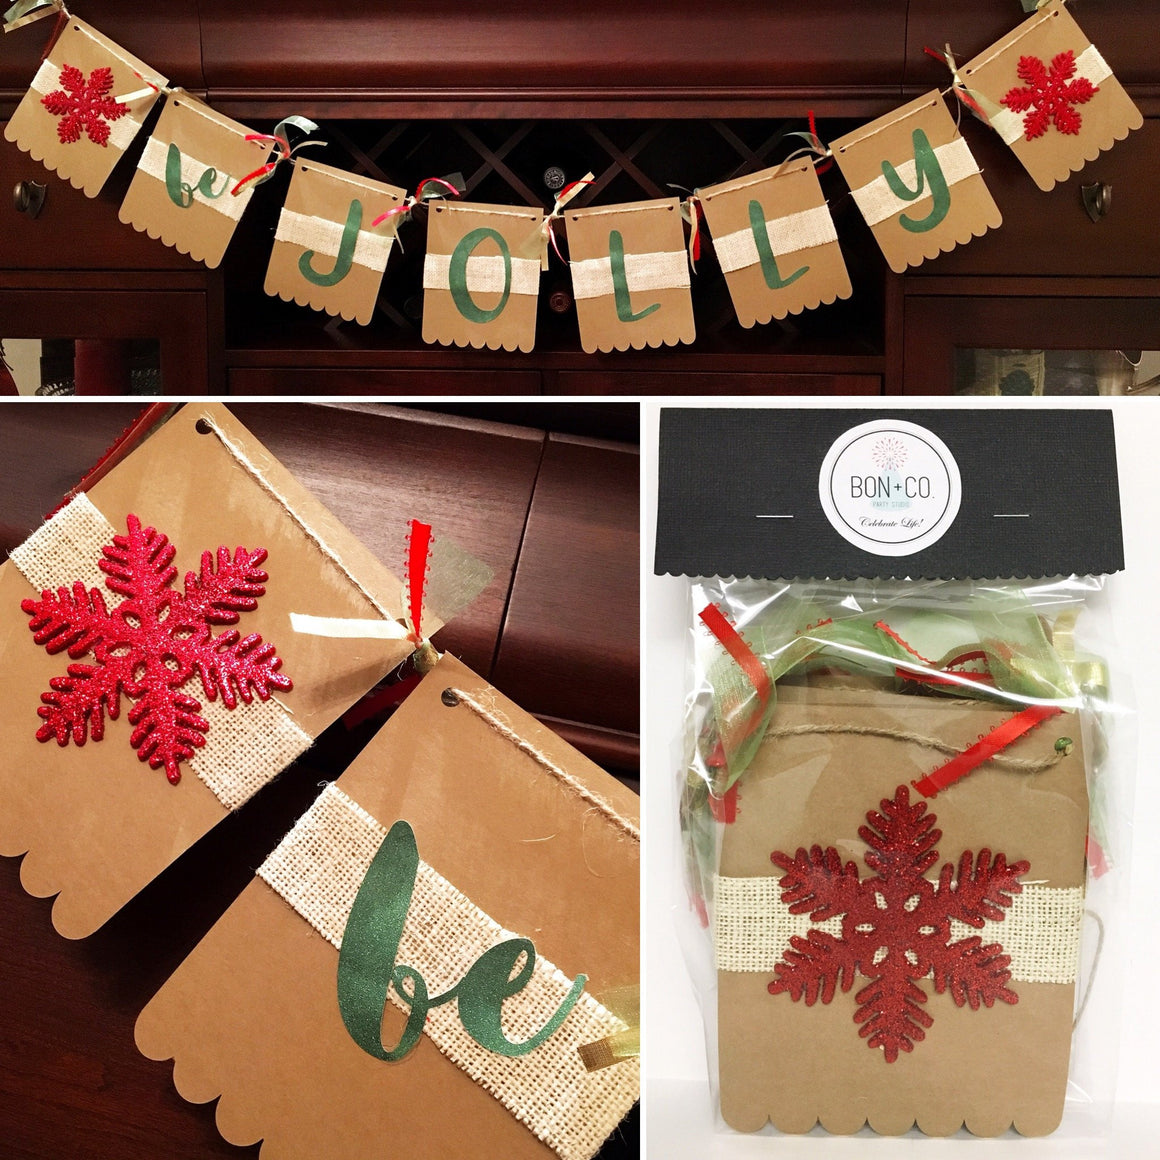 BE JOLLY BURLAP GARLAND, Specialty Garlands, BON + CO - Bon + Co. Party Studio